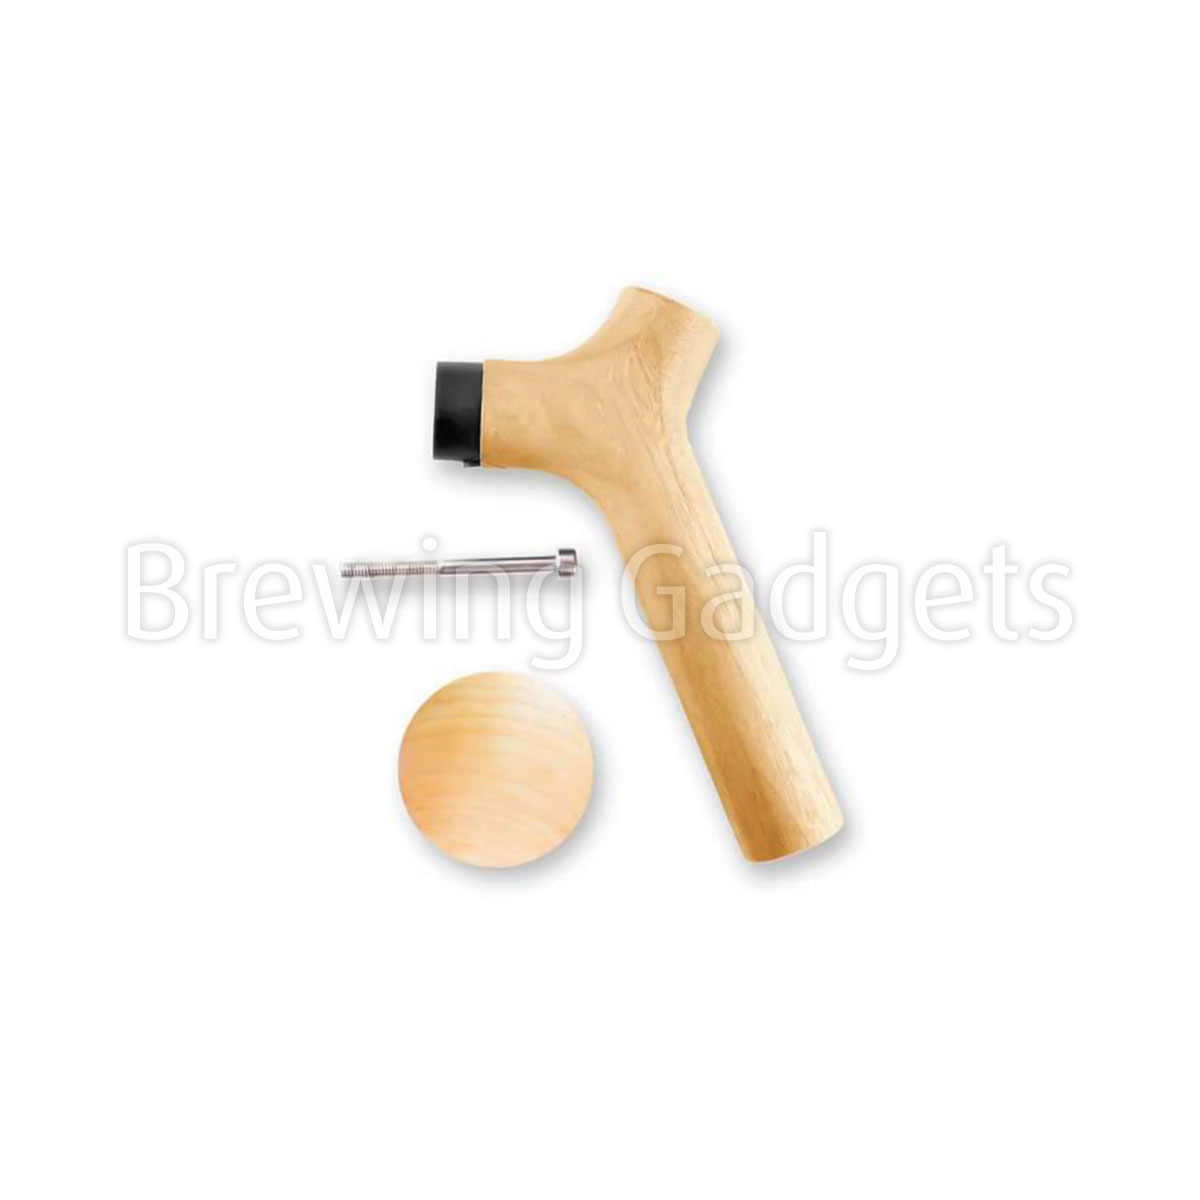 Fellow Stagg Wooden Maple Handle and Lid Pull Kit